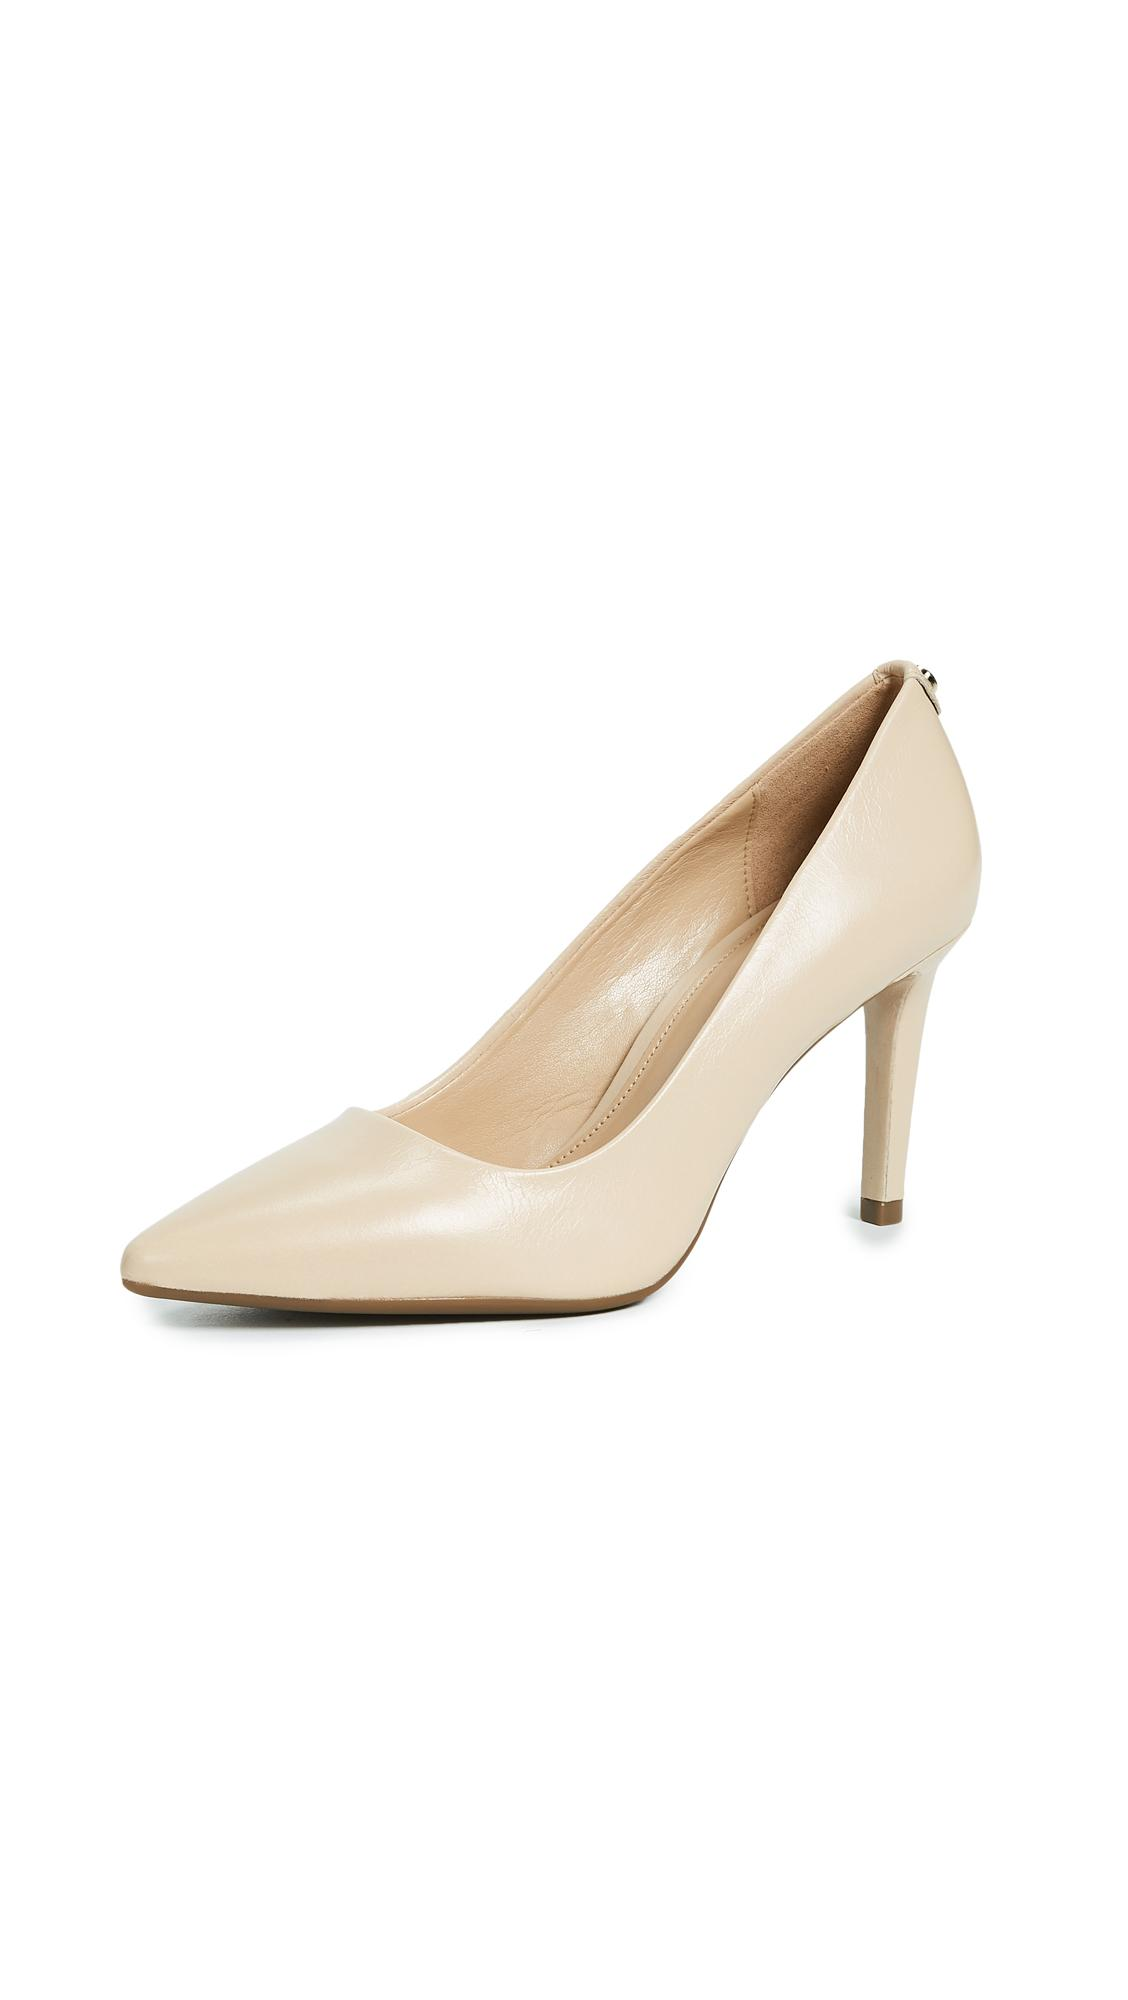 86f6426a141 Michael Michael Kors Dorothy Flex Pumps In Oyster